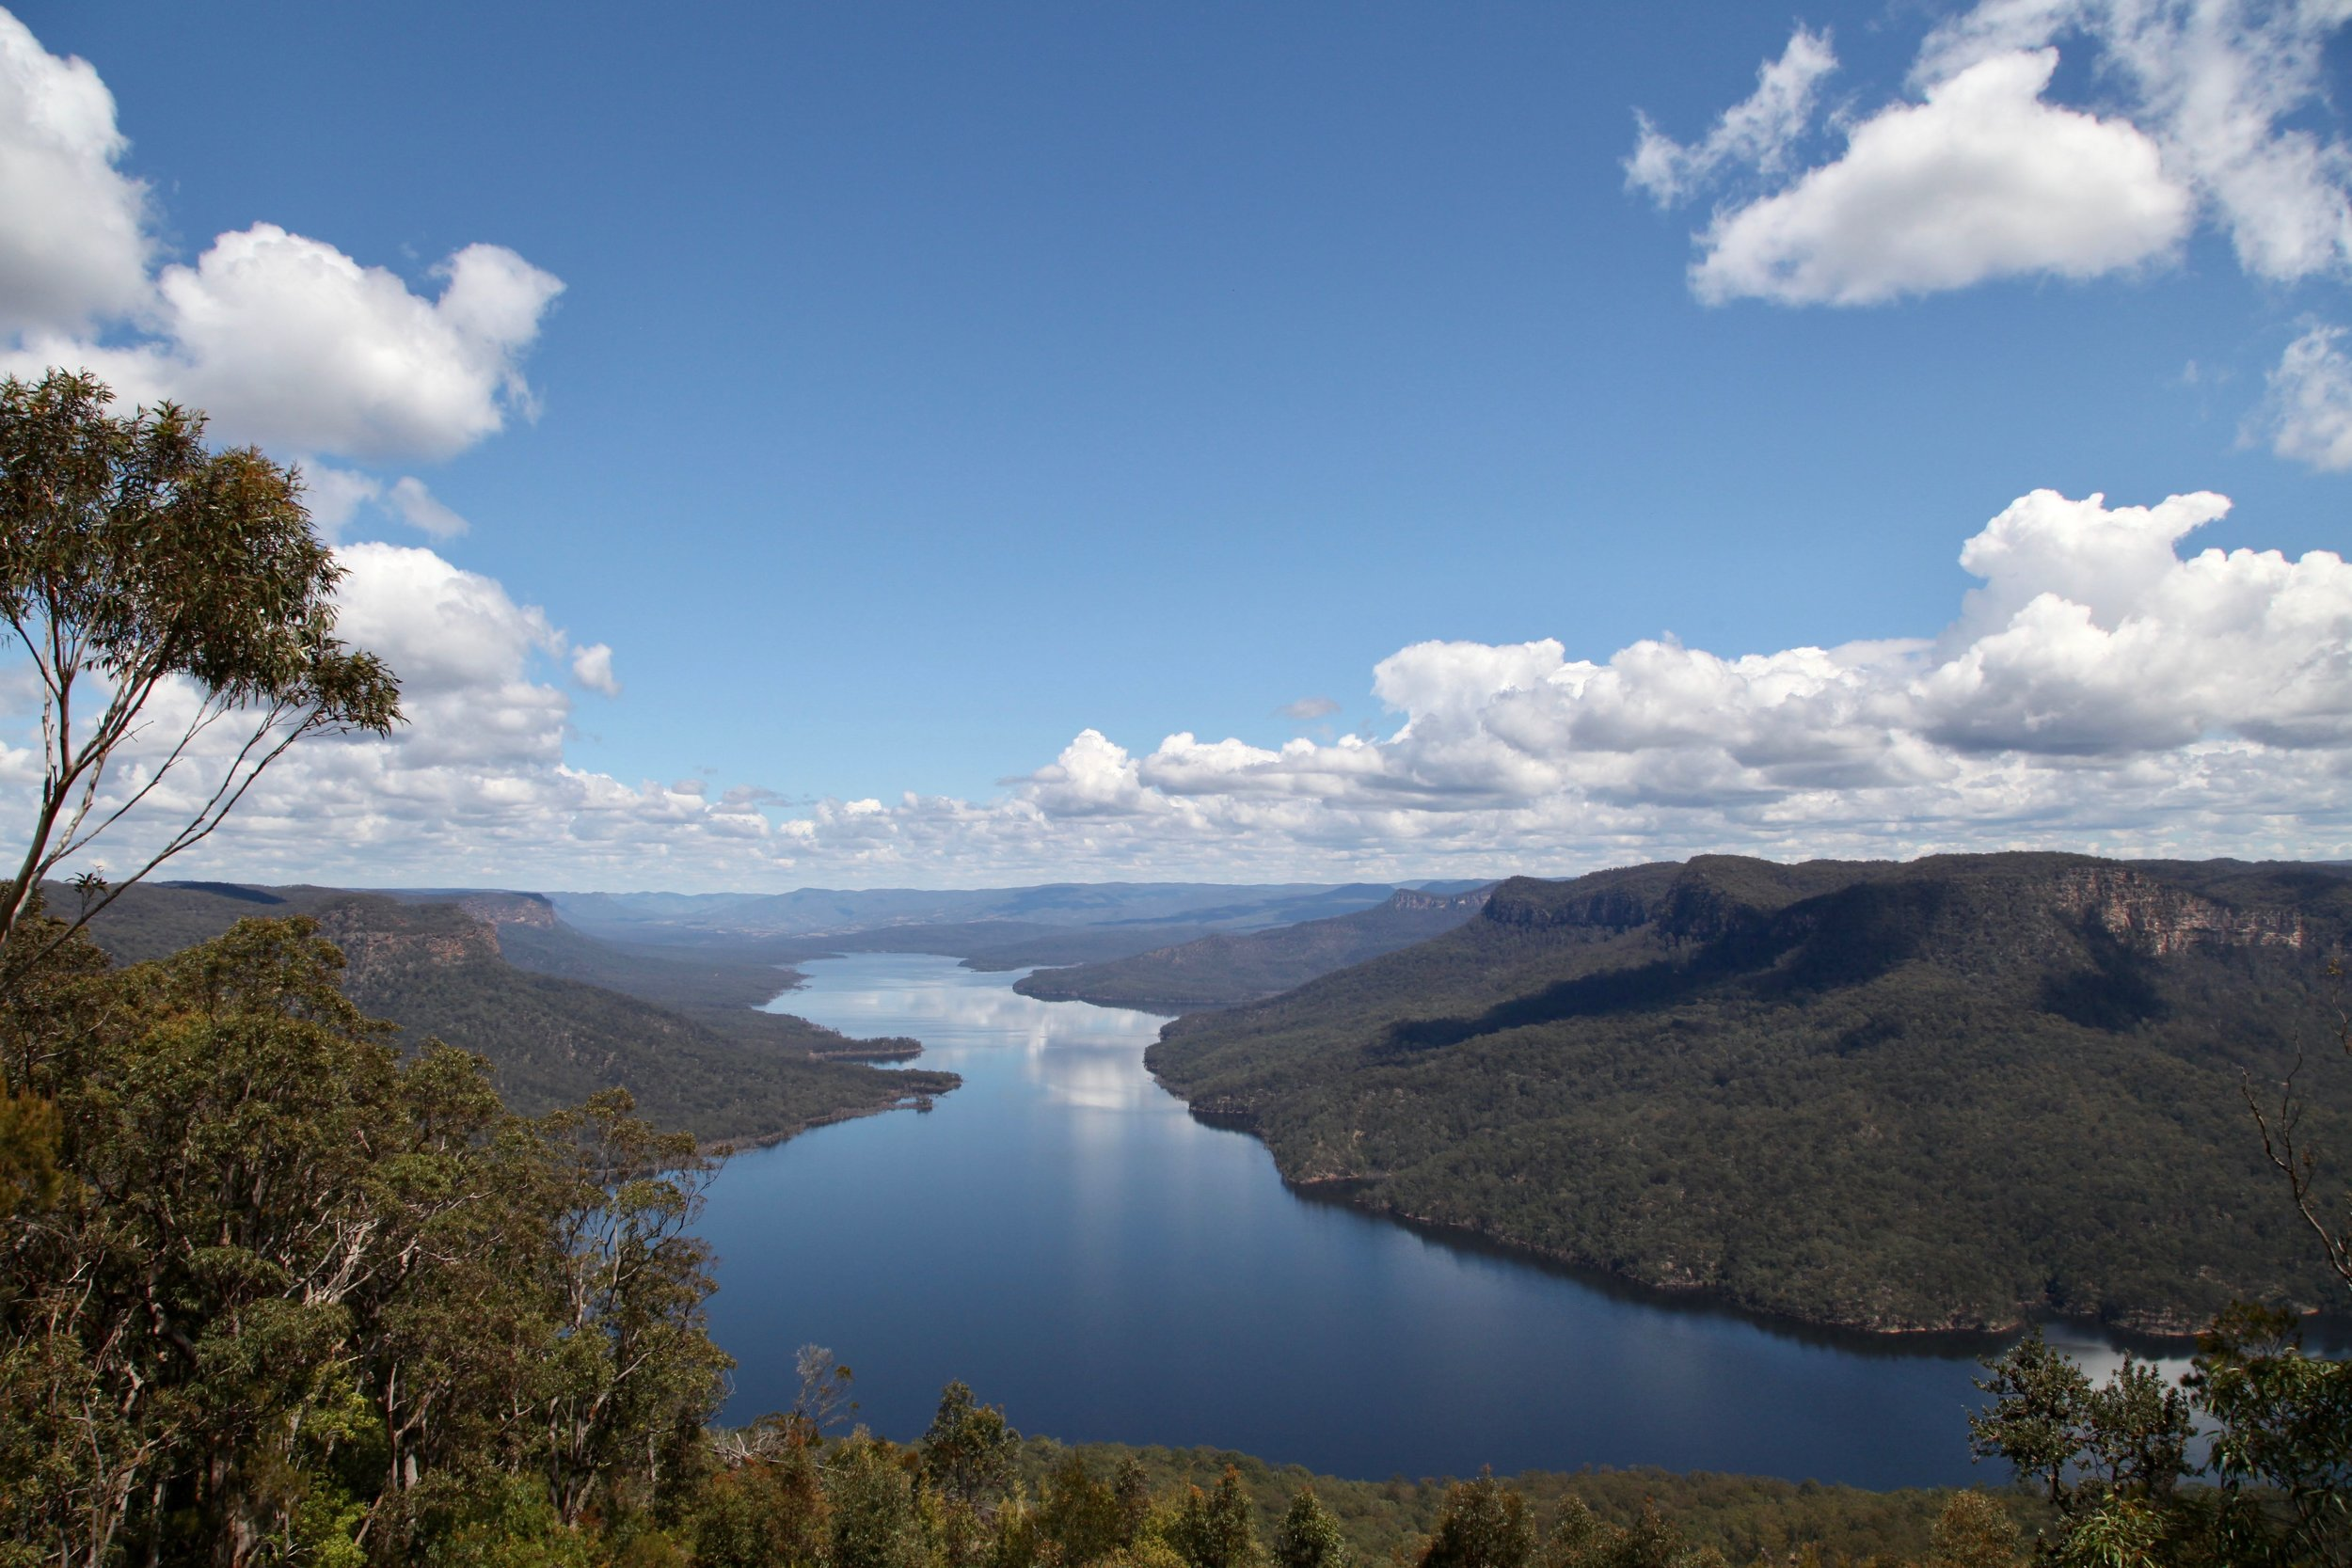 Lake Burragorang, a man-made reservoir and part of Sydney's water catchment.